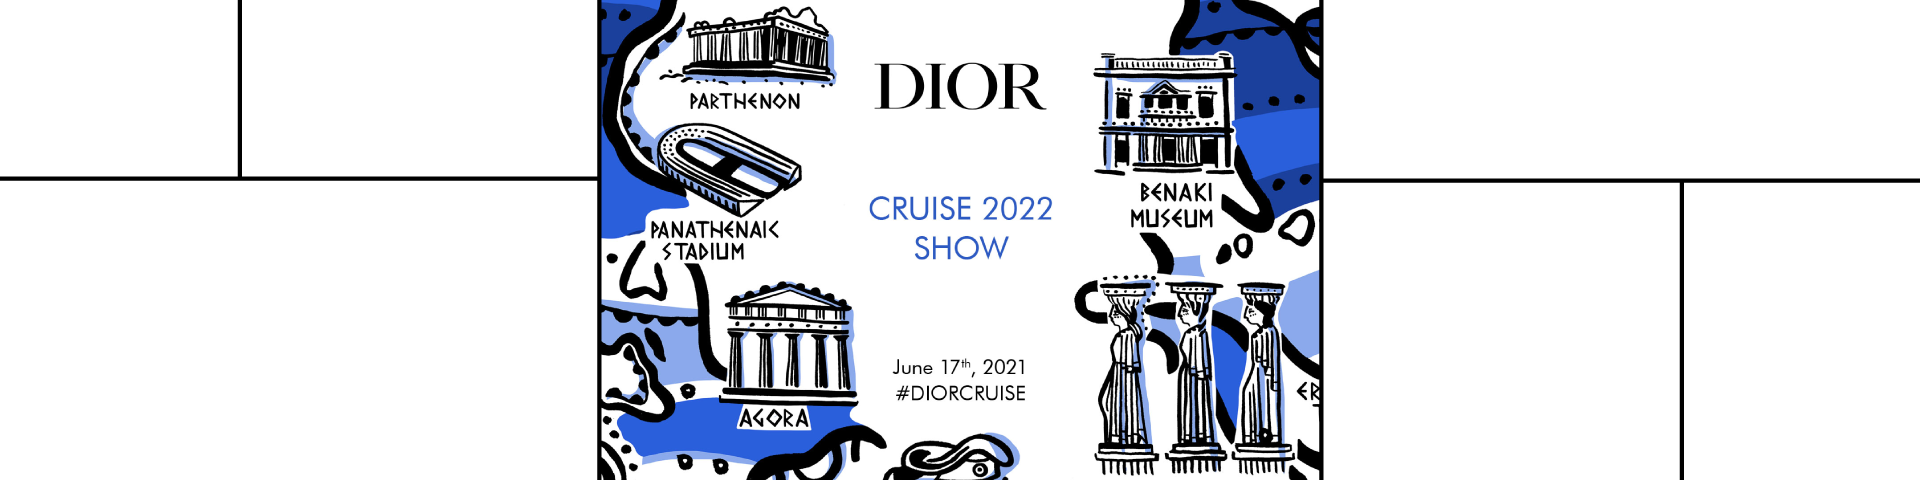 Live broadcasting of the Dior cruise 2022 fashion show - Εικόνα